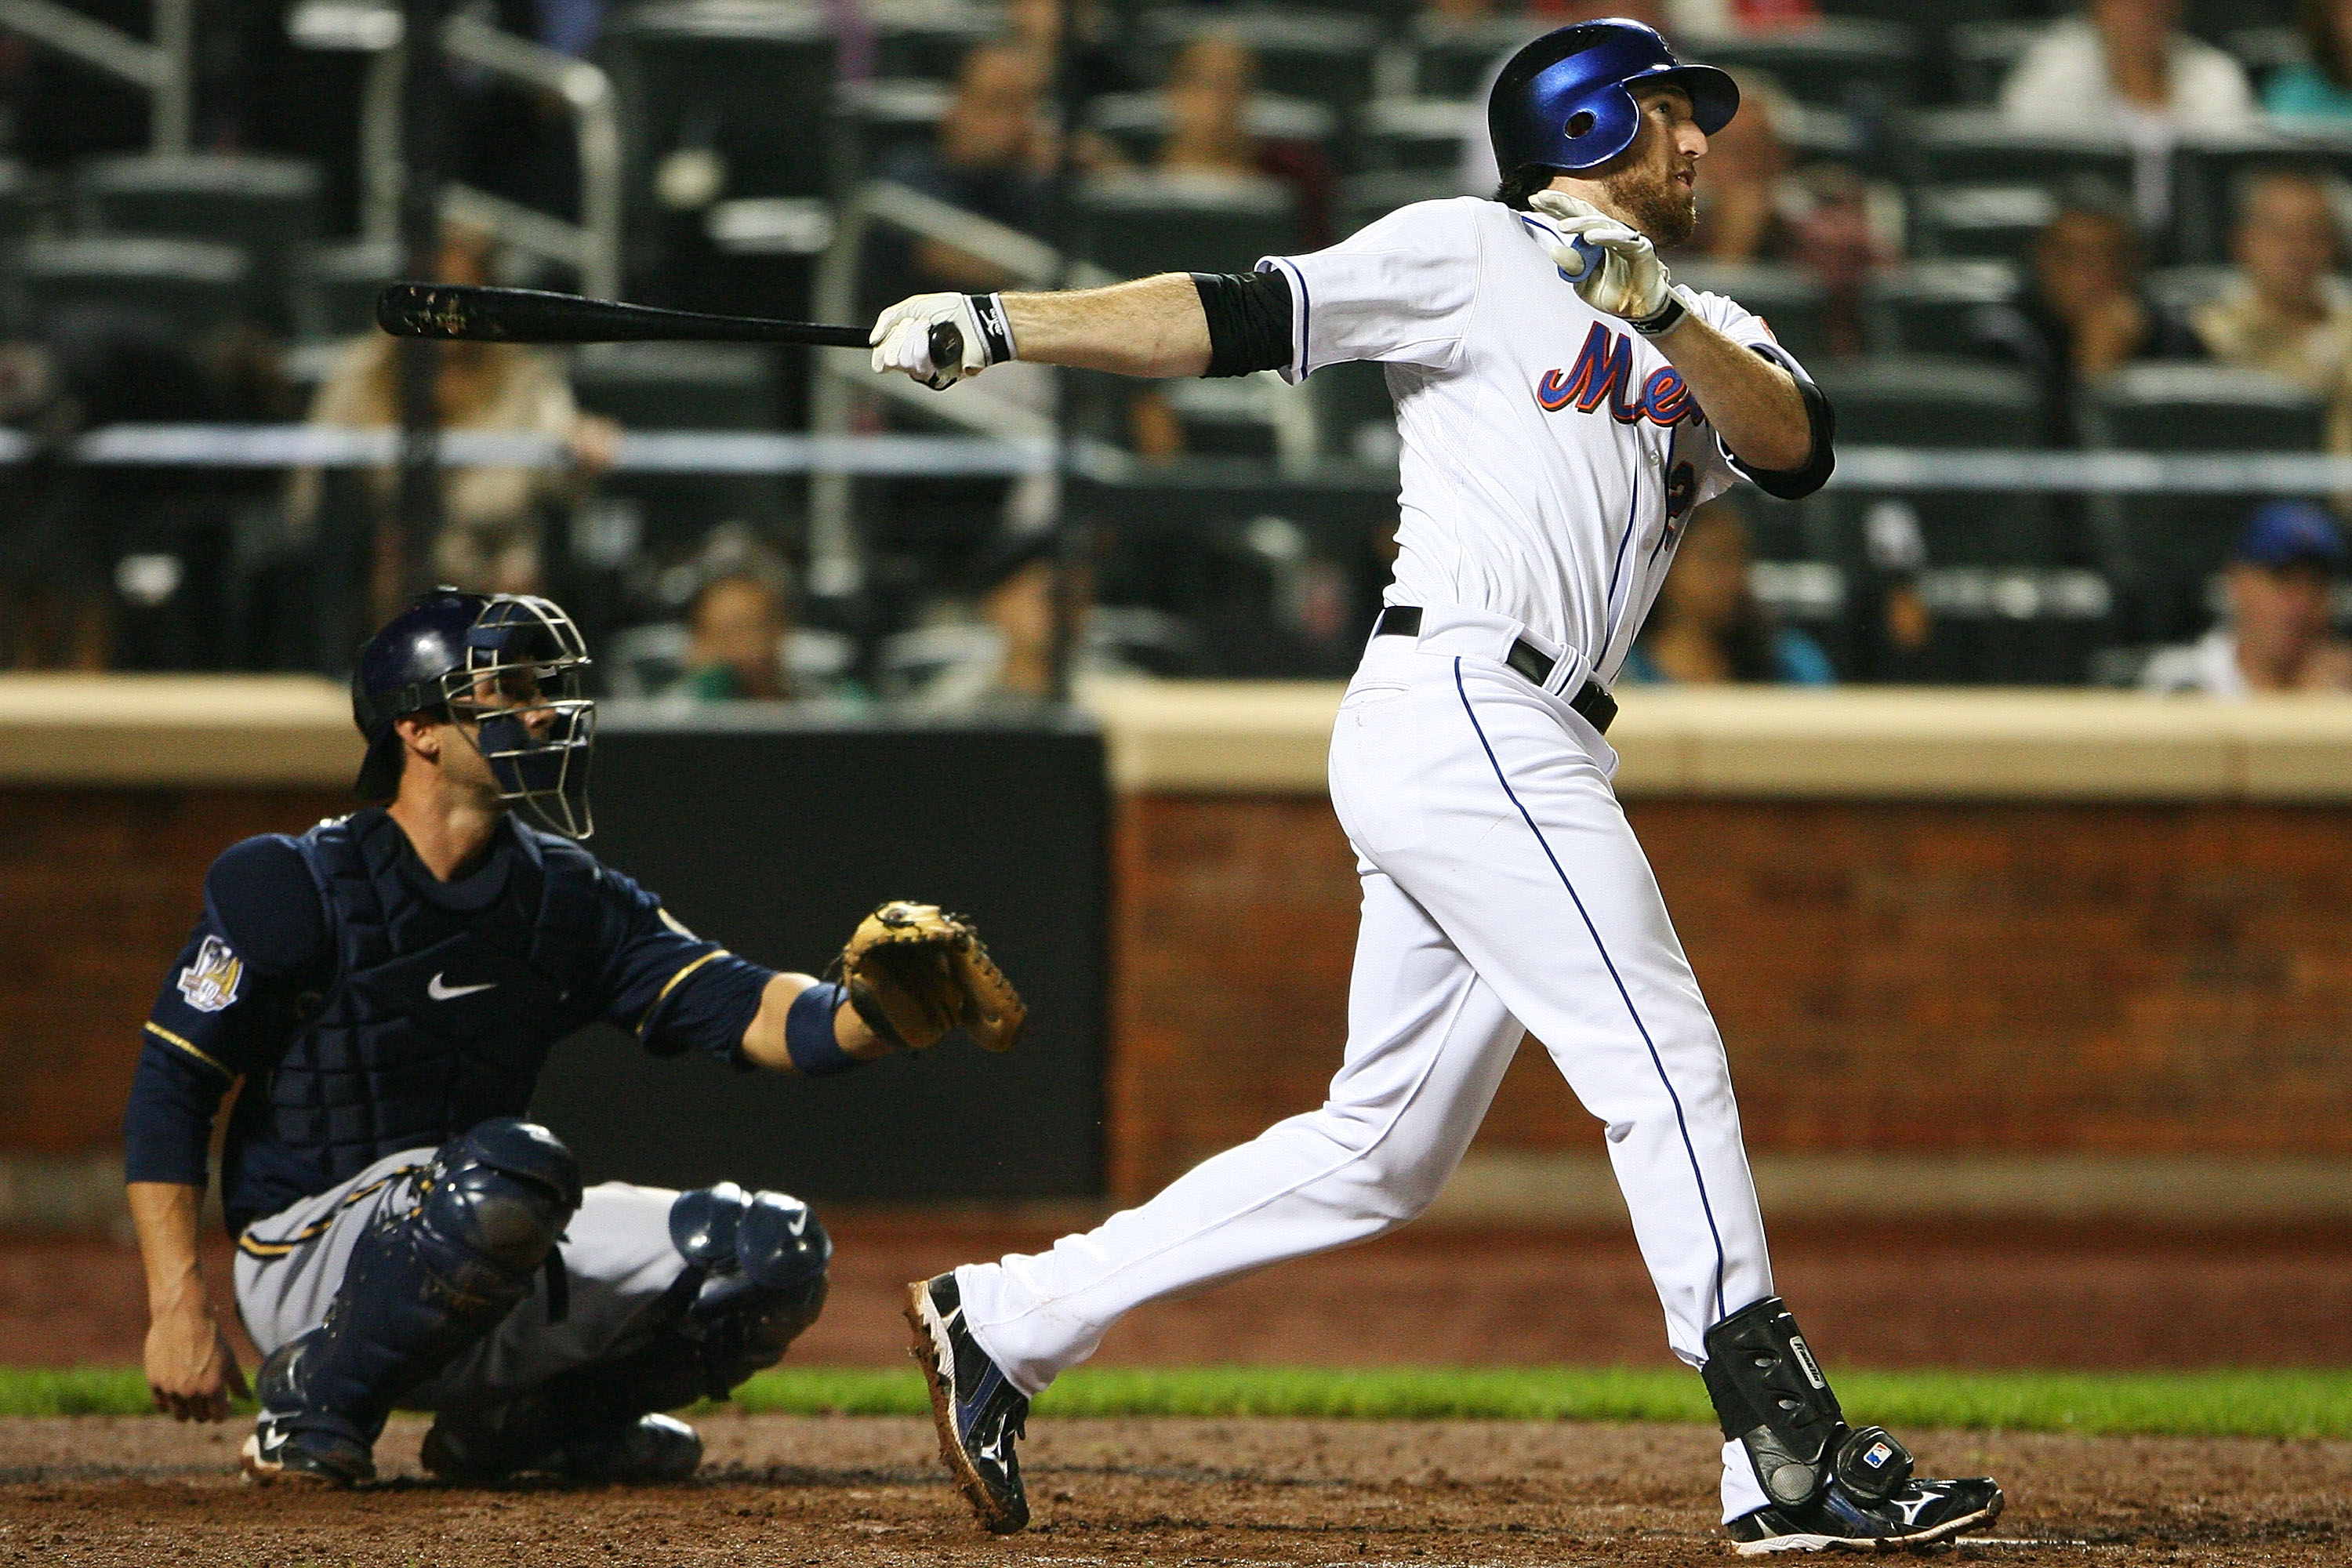 NEW YORK - SEPTEMBER 28:  Ike Davis #29 of the New York Mets watches after hitting a double in the ninth inning against the Milwaukee Brewers on September 28, 2010 at Citi Field in the Flushing neighborhood of the Queens borough of New York City. The Mets